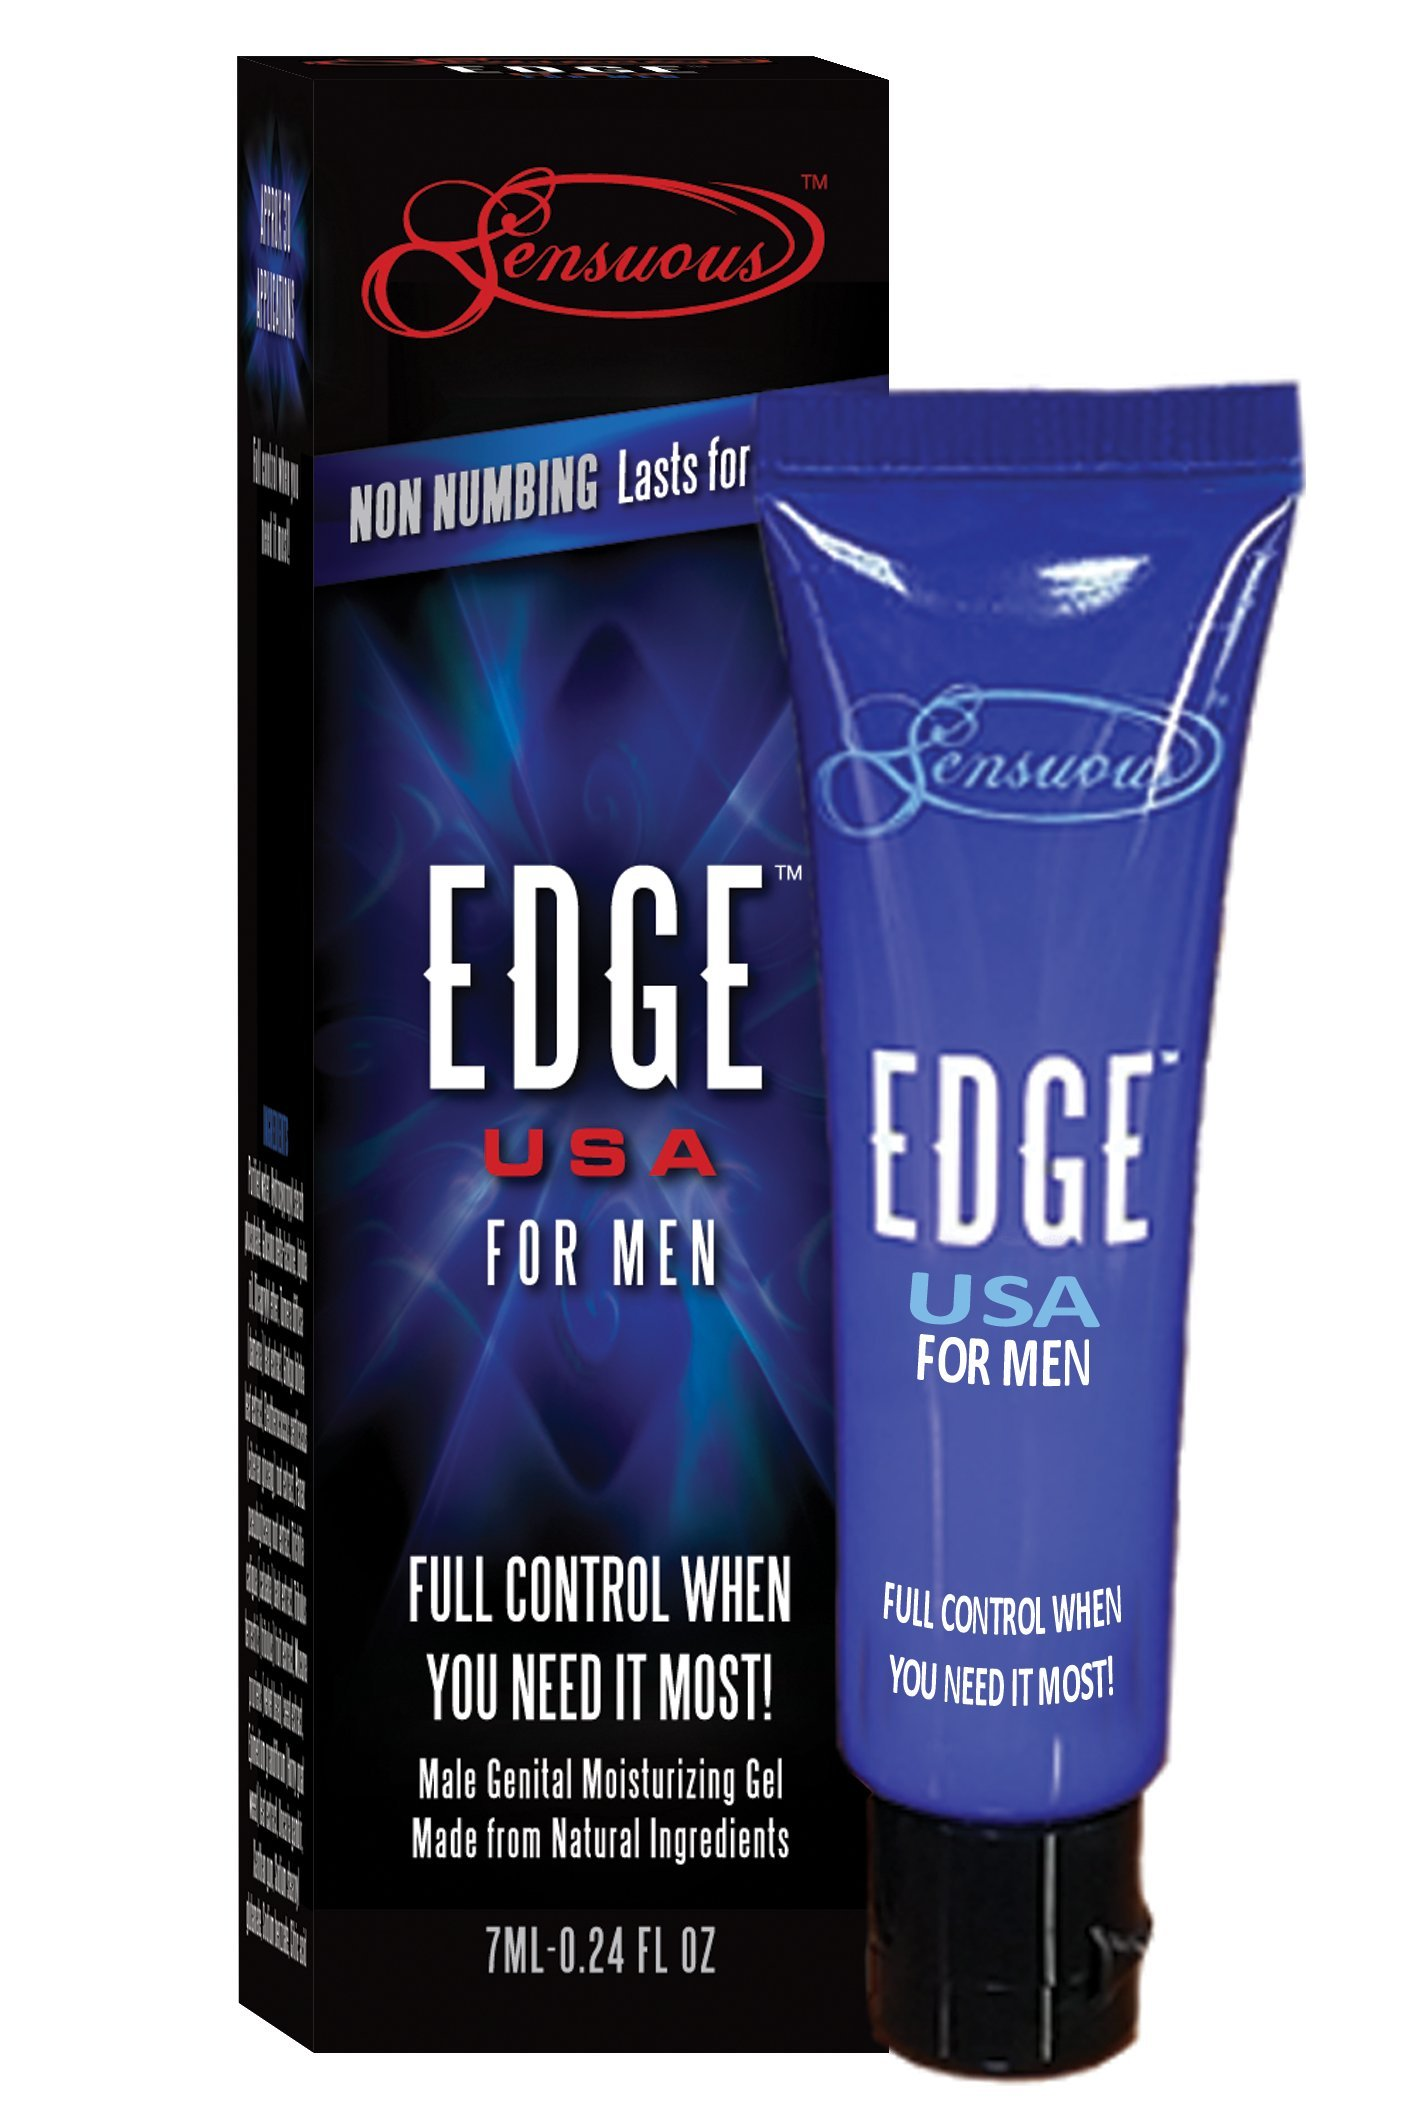 Edge Delay Gel: Ultimate Staying Power: Natural Delay Gel for Men, Prolonging and Desensitizing Delay for Men (30 Applications) NO Lidocaine, NO Numbing and LONG Lasting! Pocket Size Tube! (7ml)